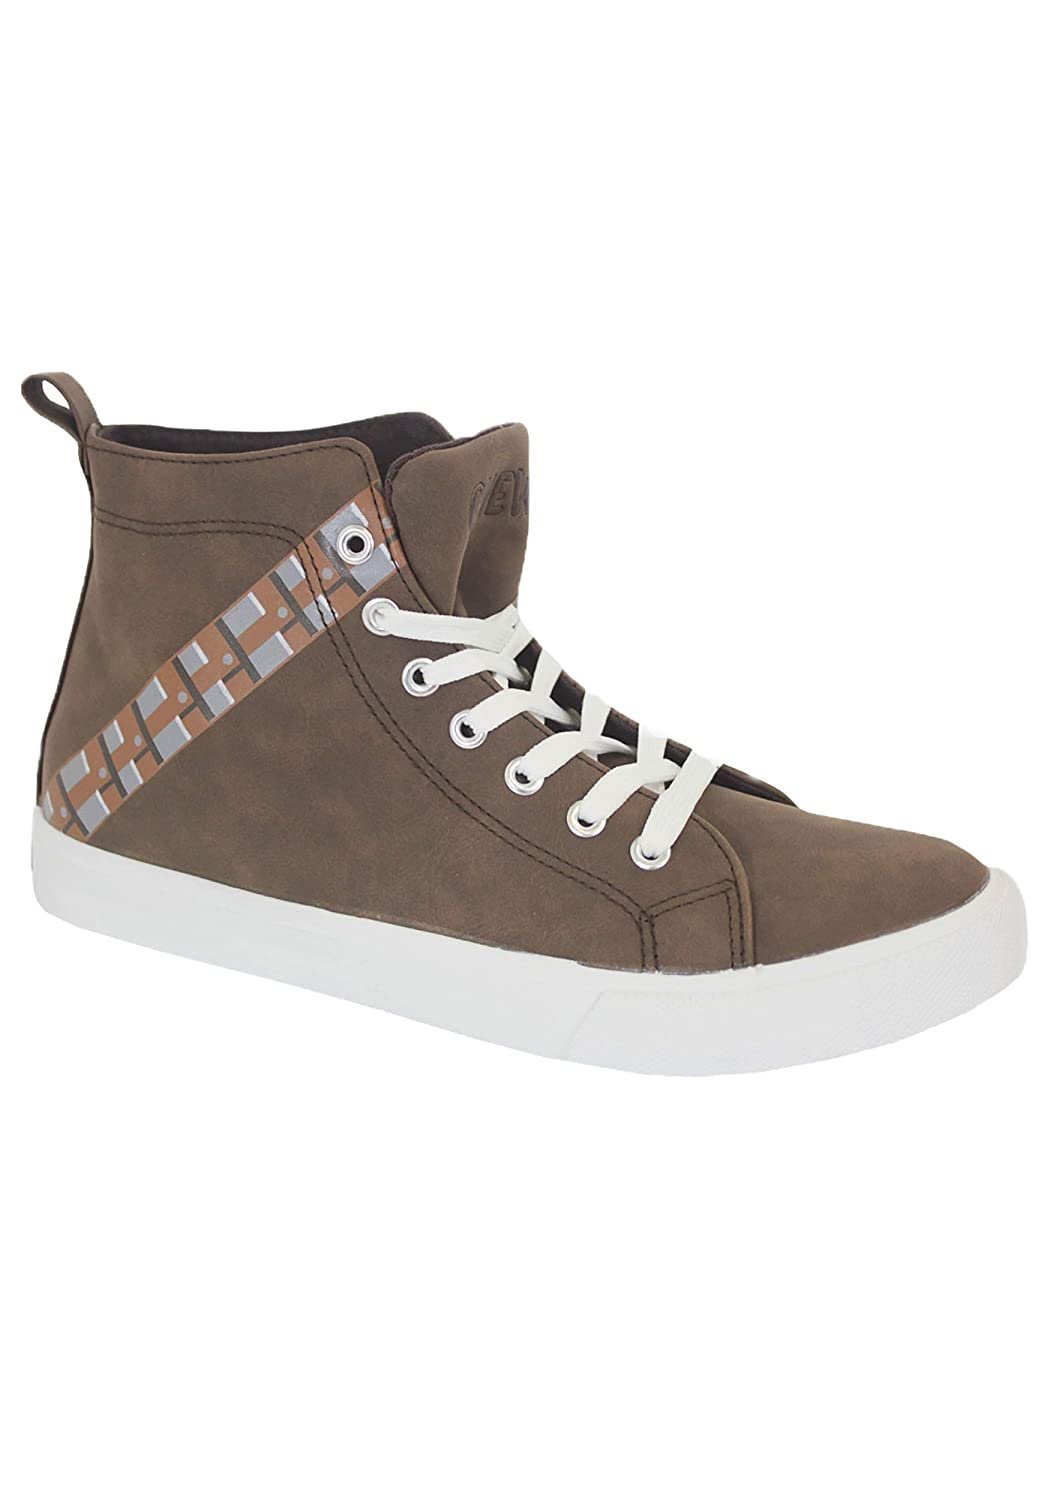 Star Wars Chewbacca Mens High Top Sneakers Size 11